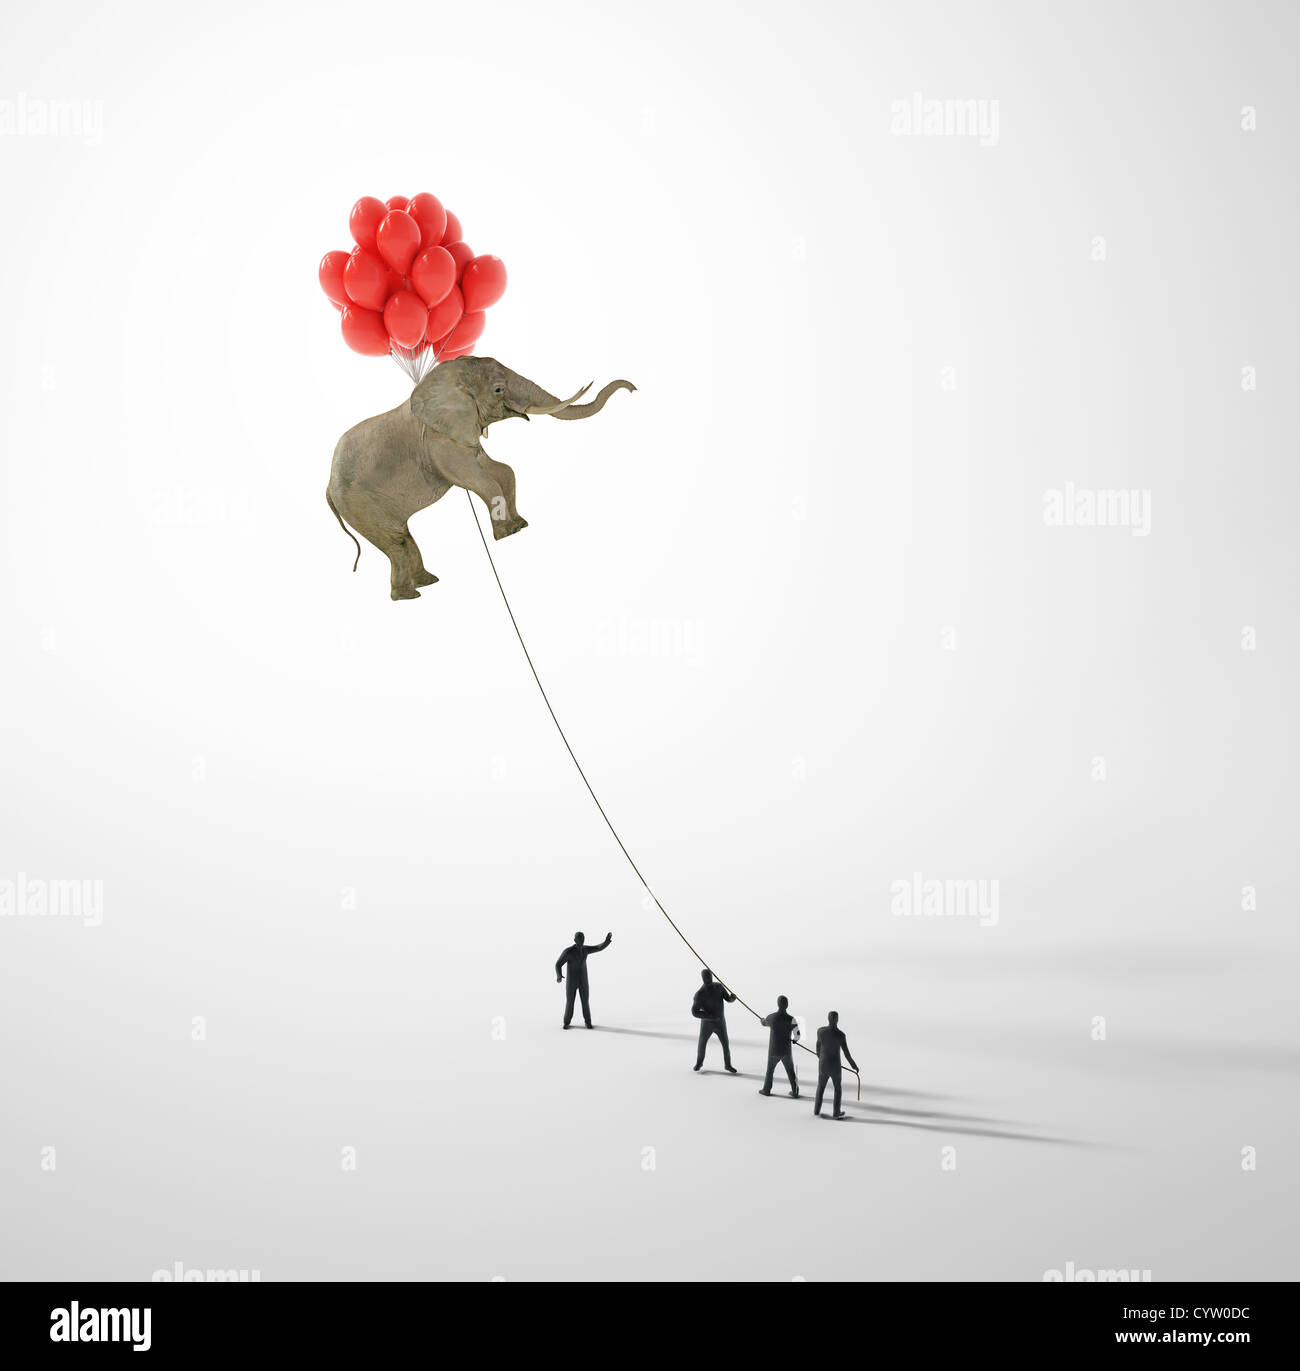 Elephant lifted by balloons and held on a rope by tiny people - Stock Image